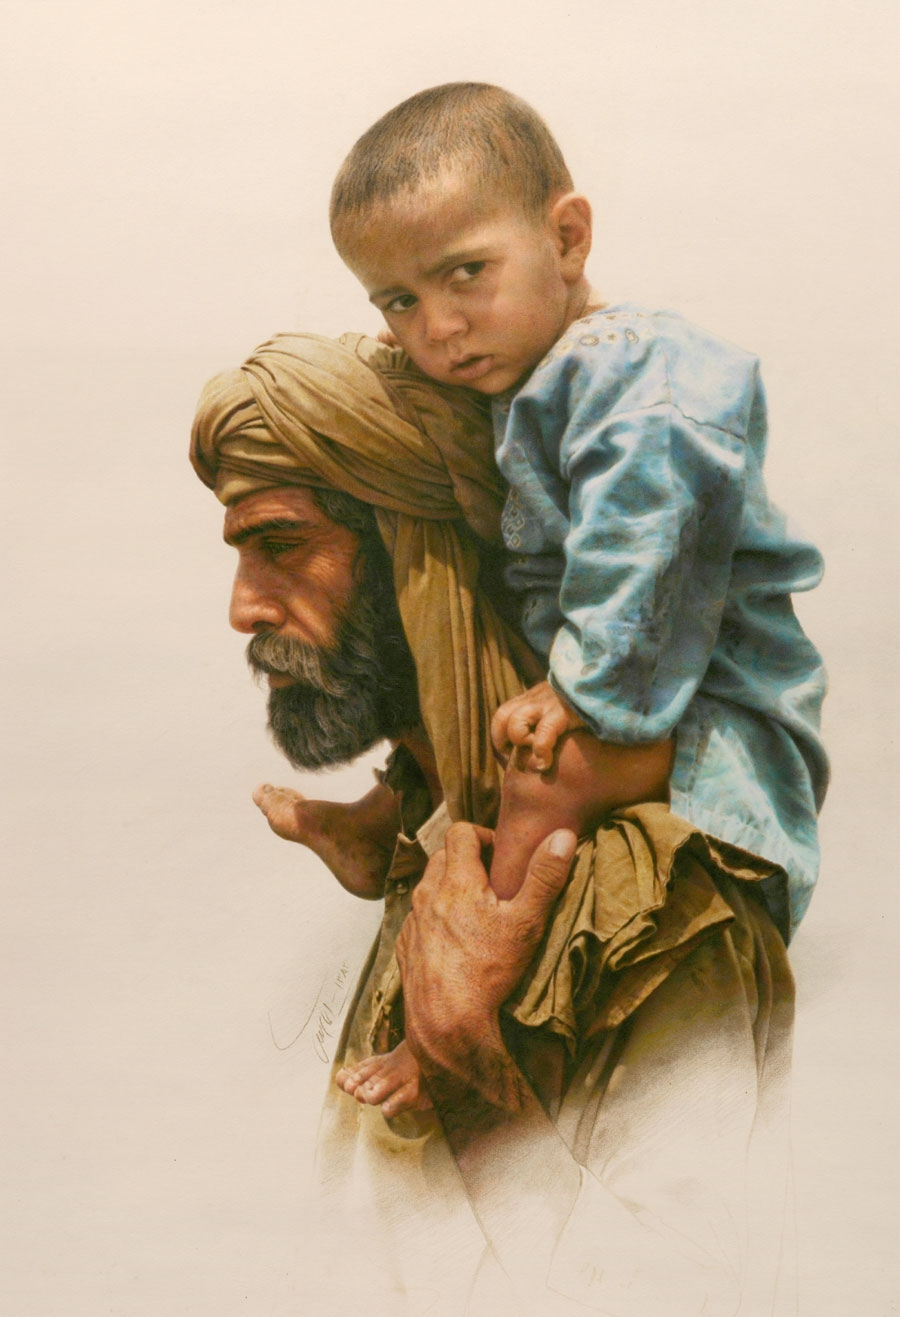 11-Emigrant-Iman-Maleki-Realistic-Paintings-that-Portray-Intense-Expressions-www-designstack-co